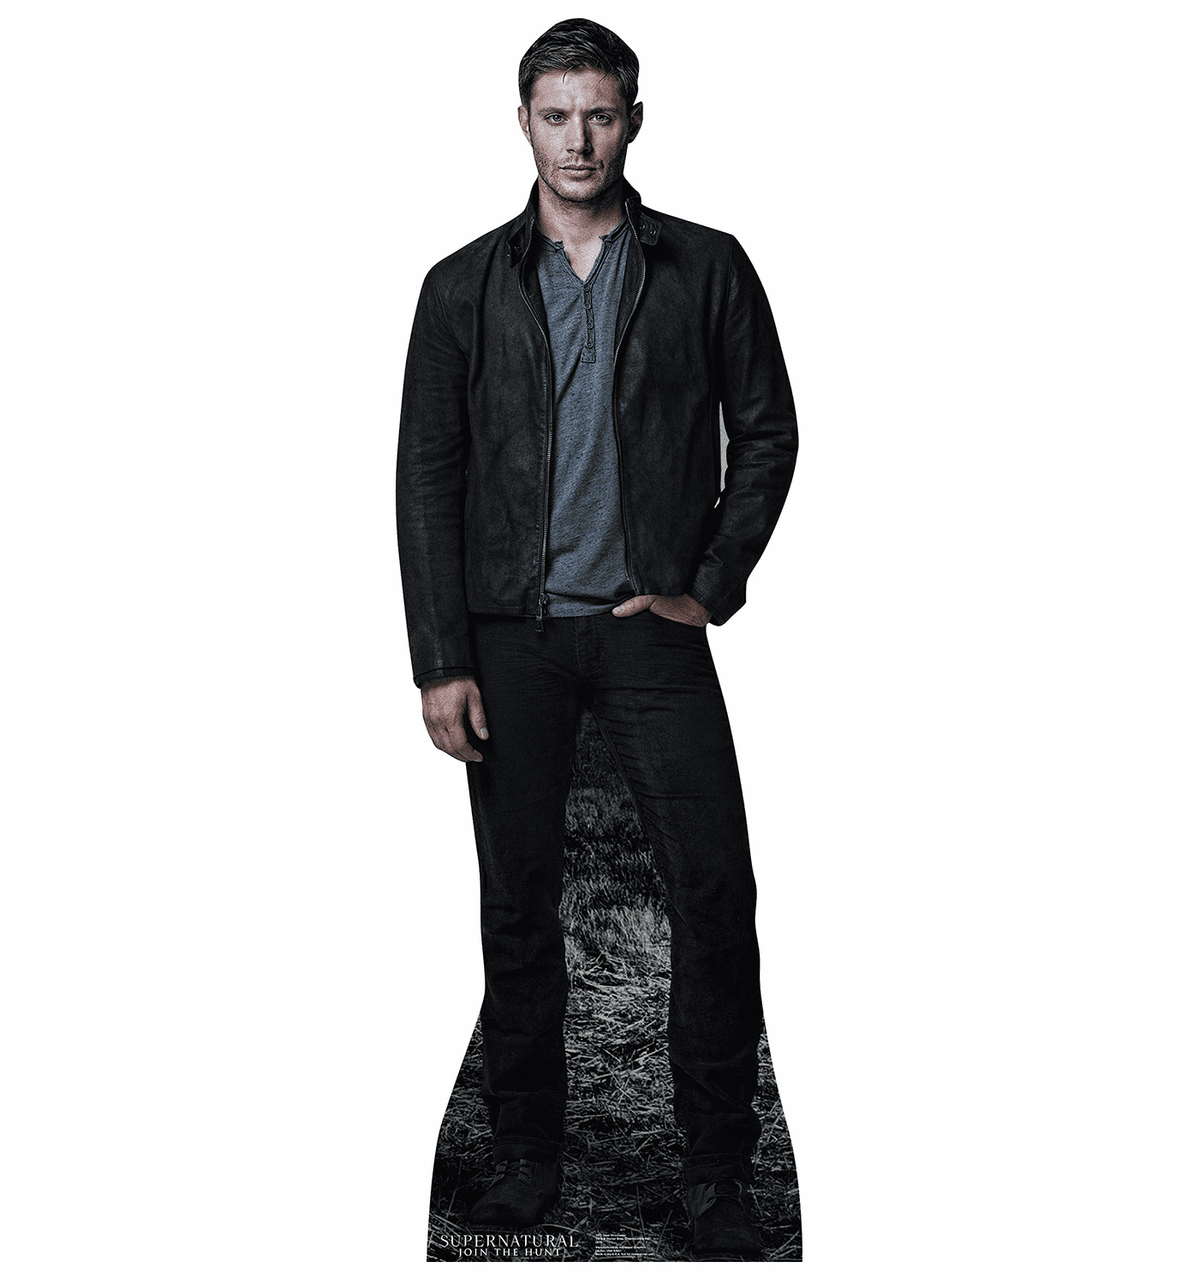 Life Size Supernatural Standees